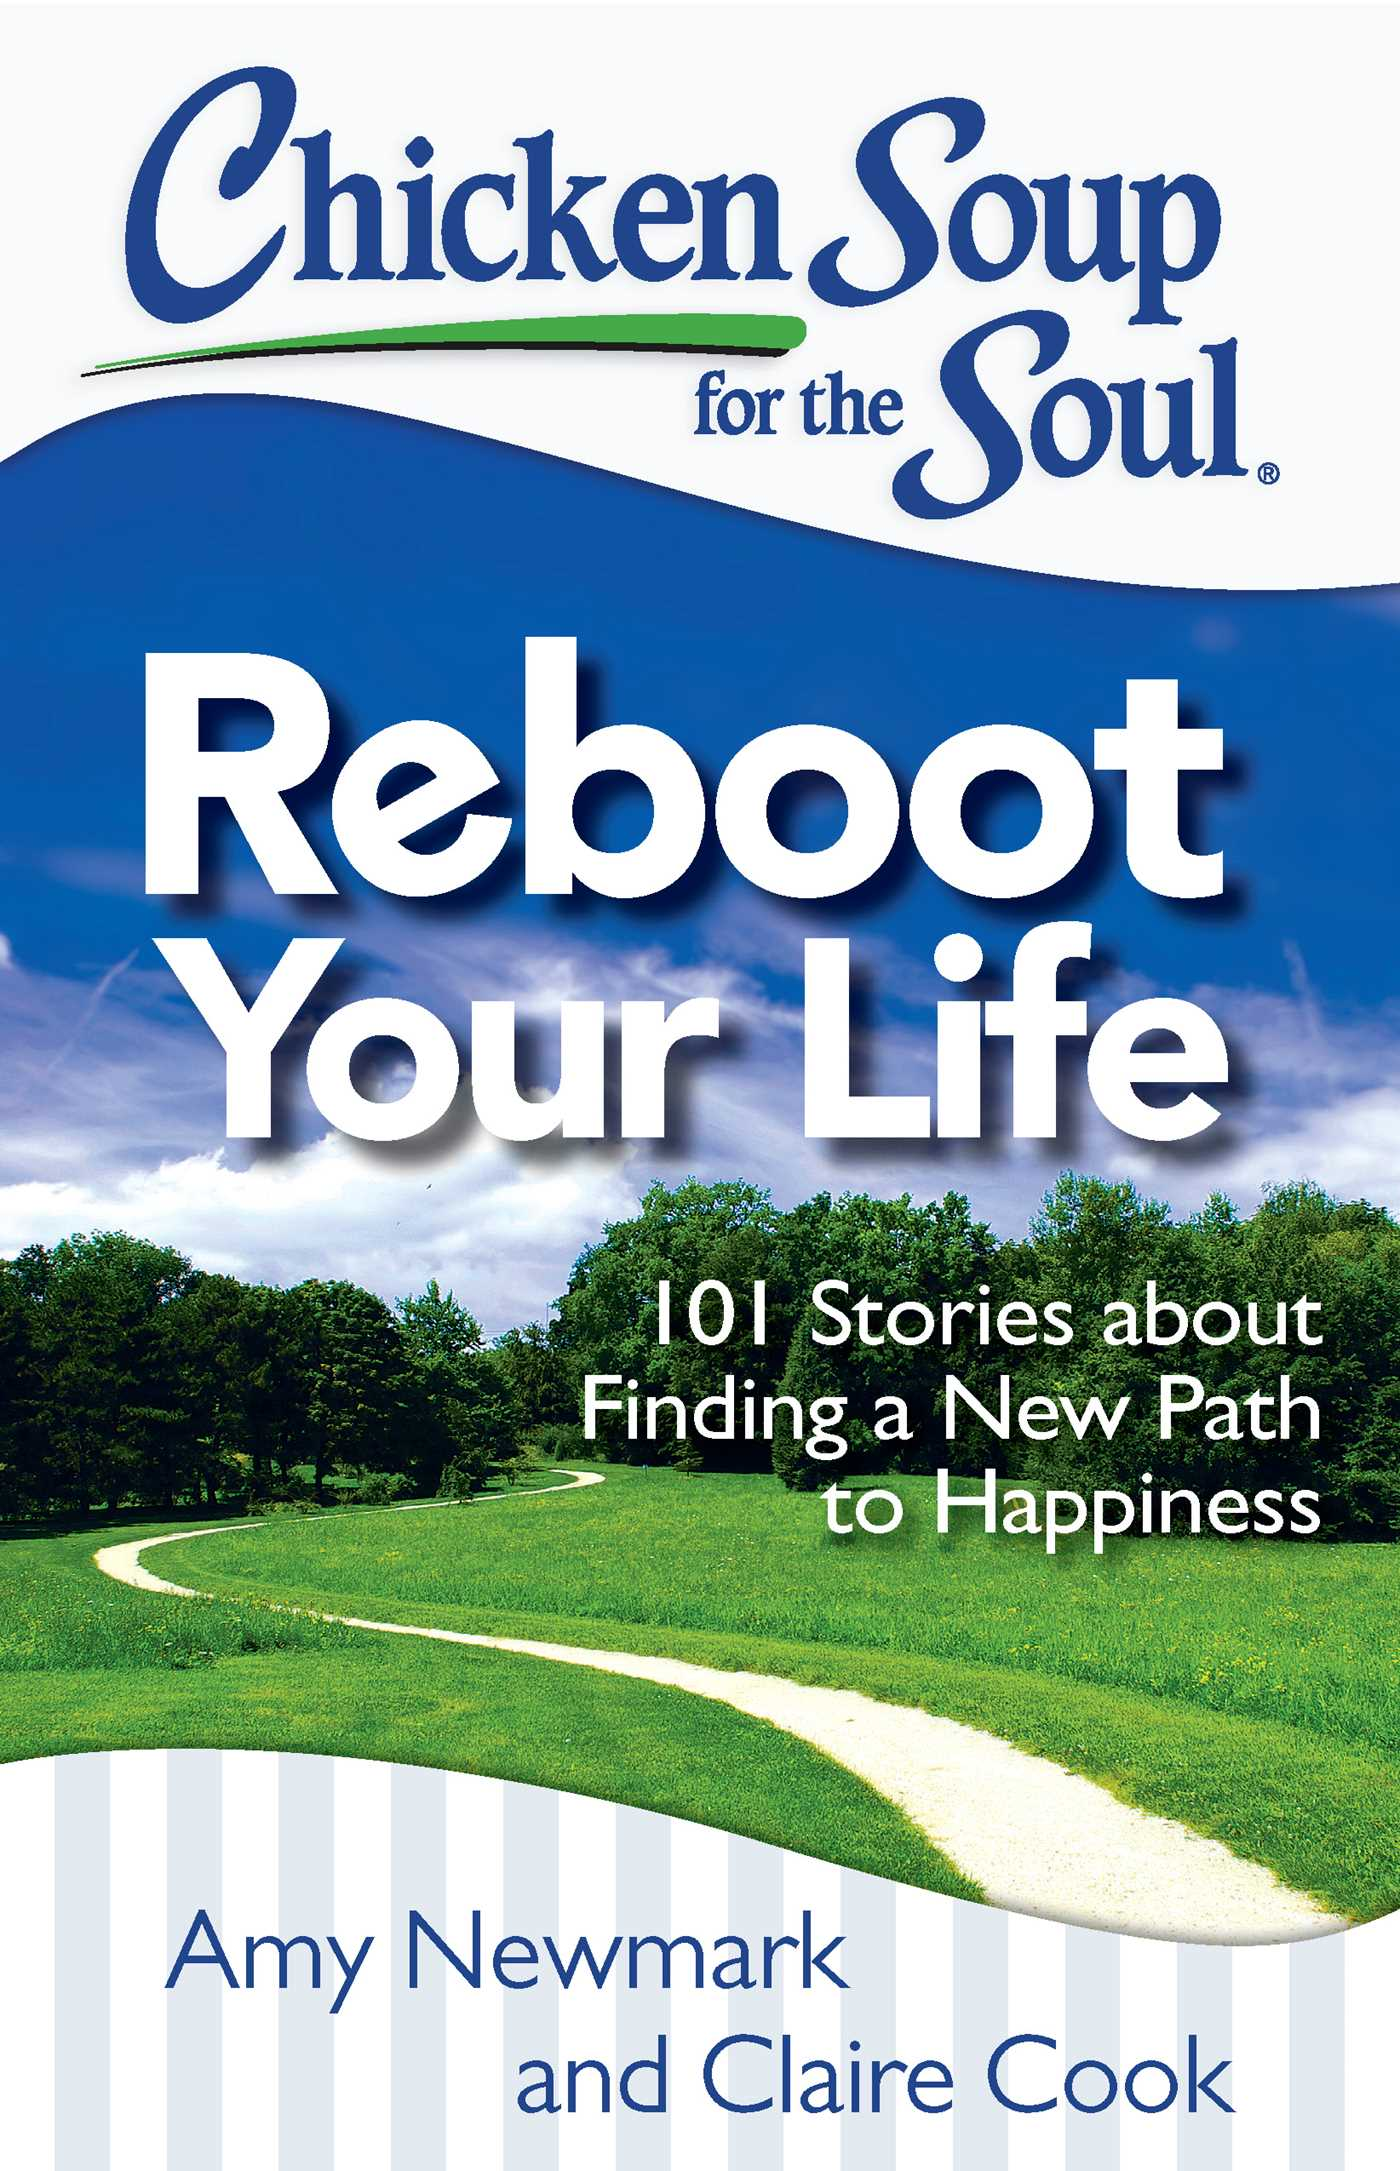 Chicken soup for the soul reboot your life 9781611592412 hr